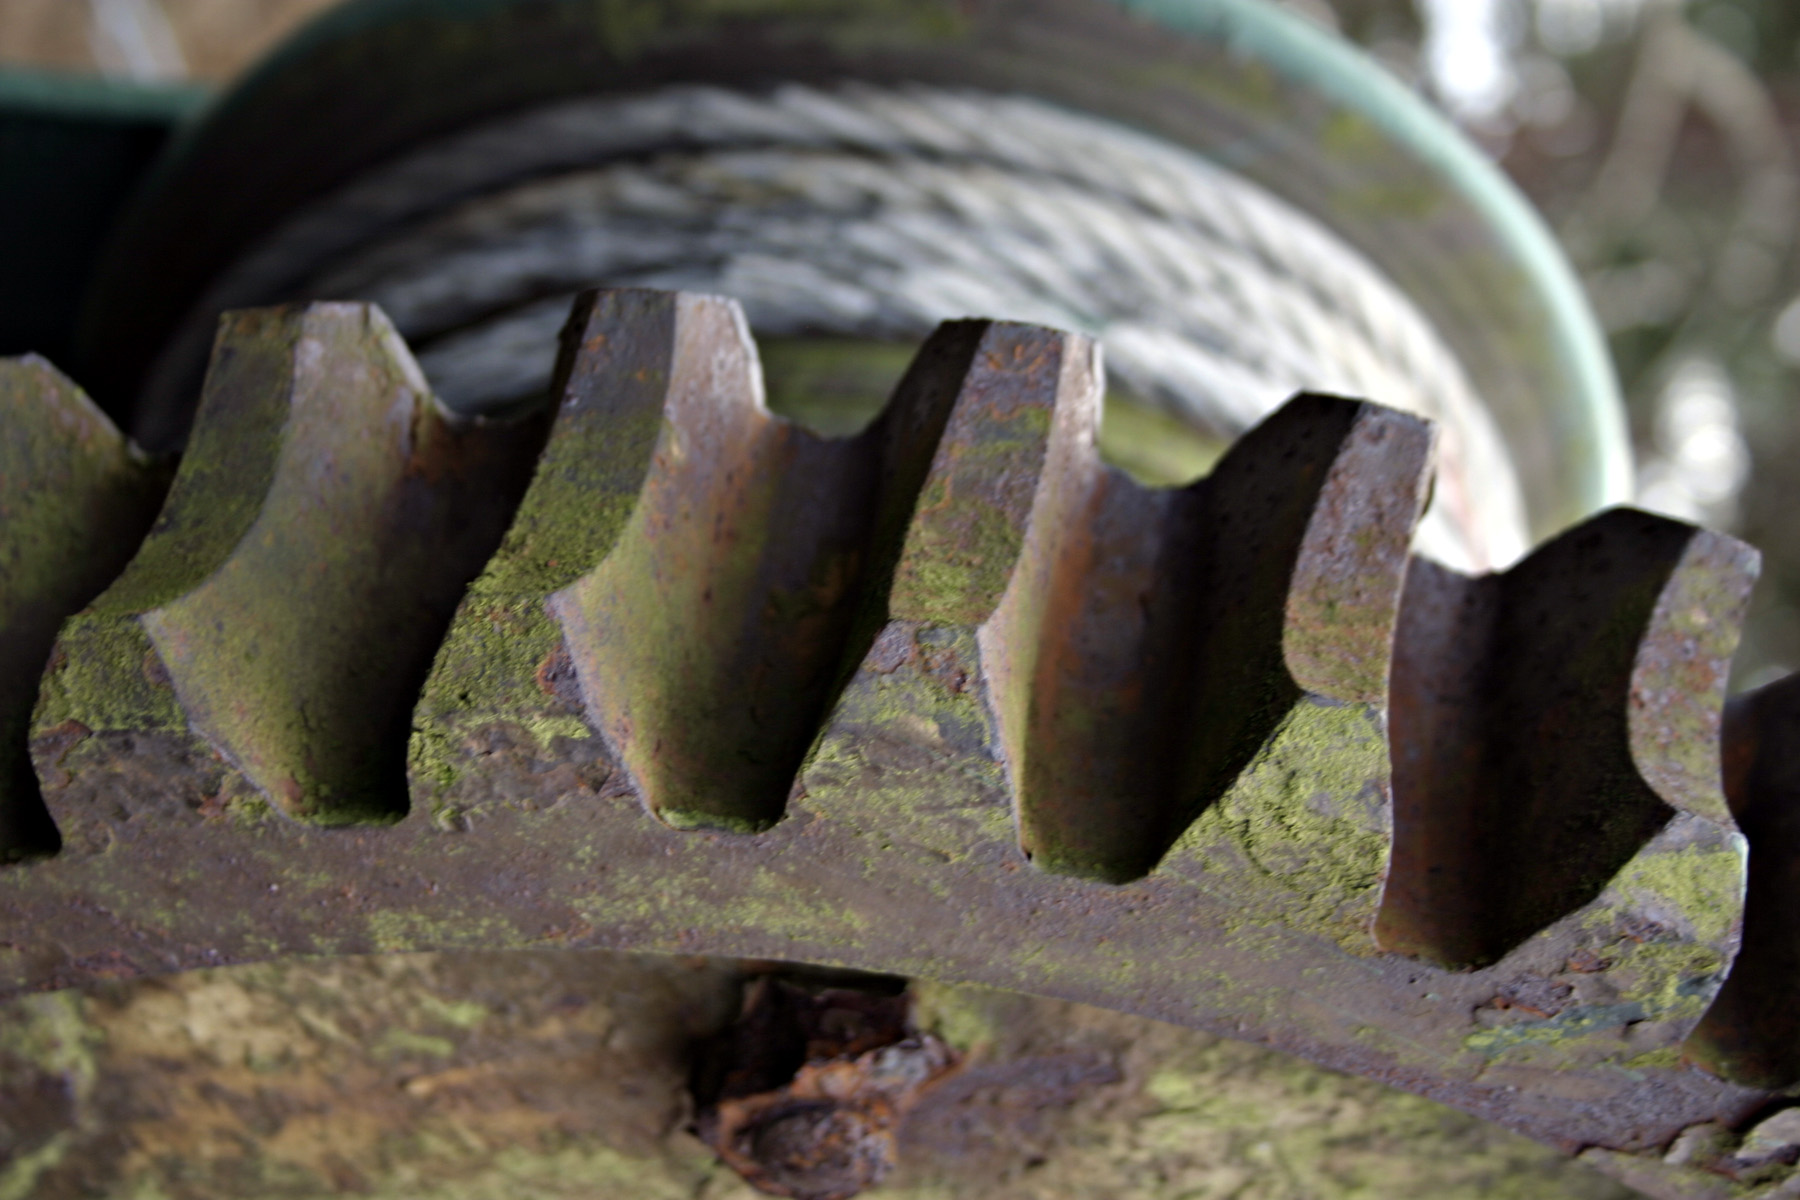 Rusted gear and wires photo